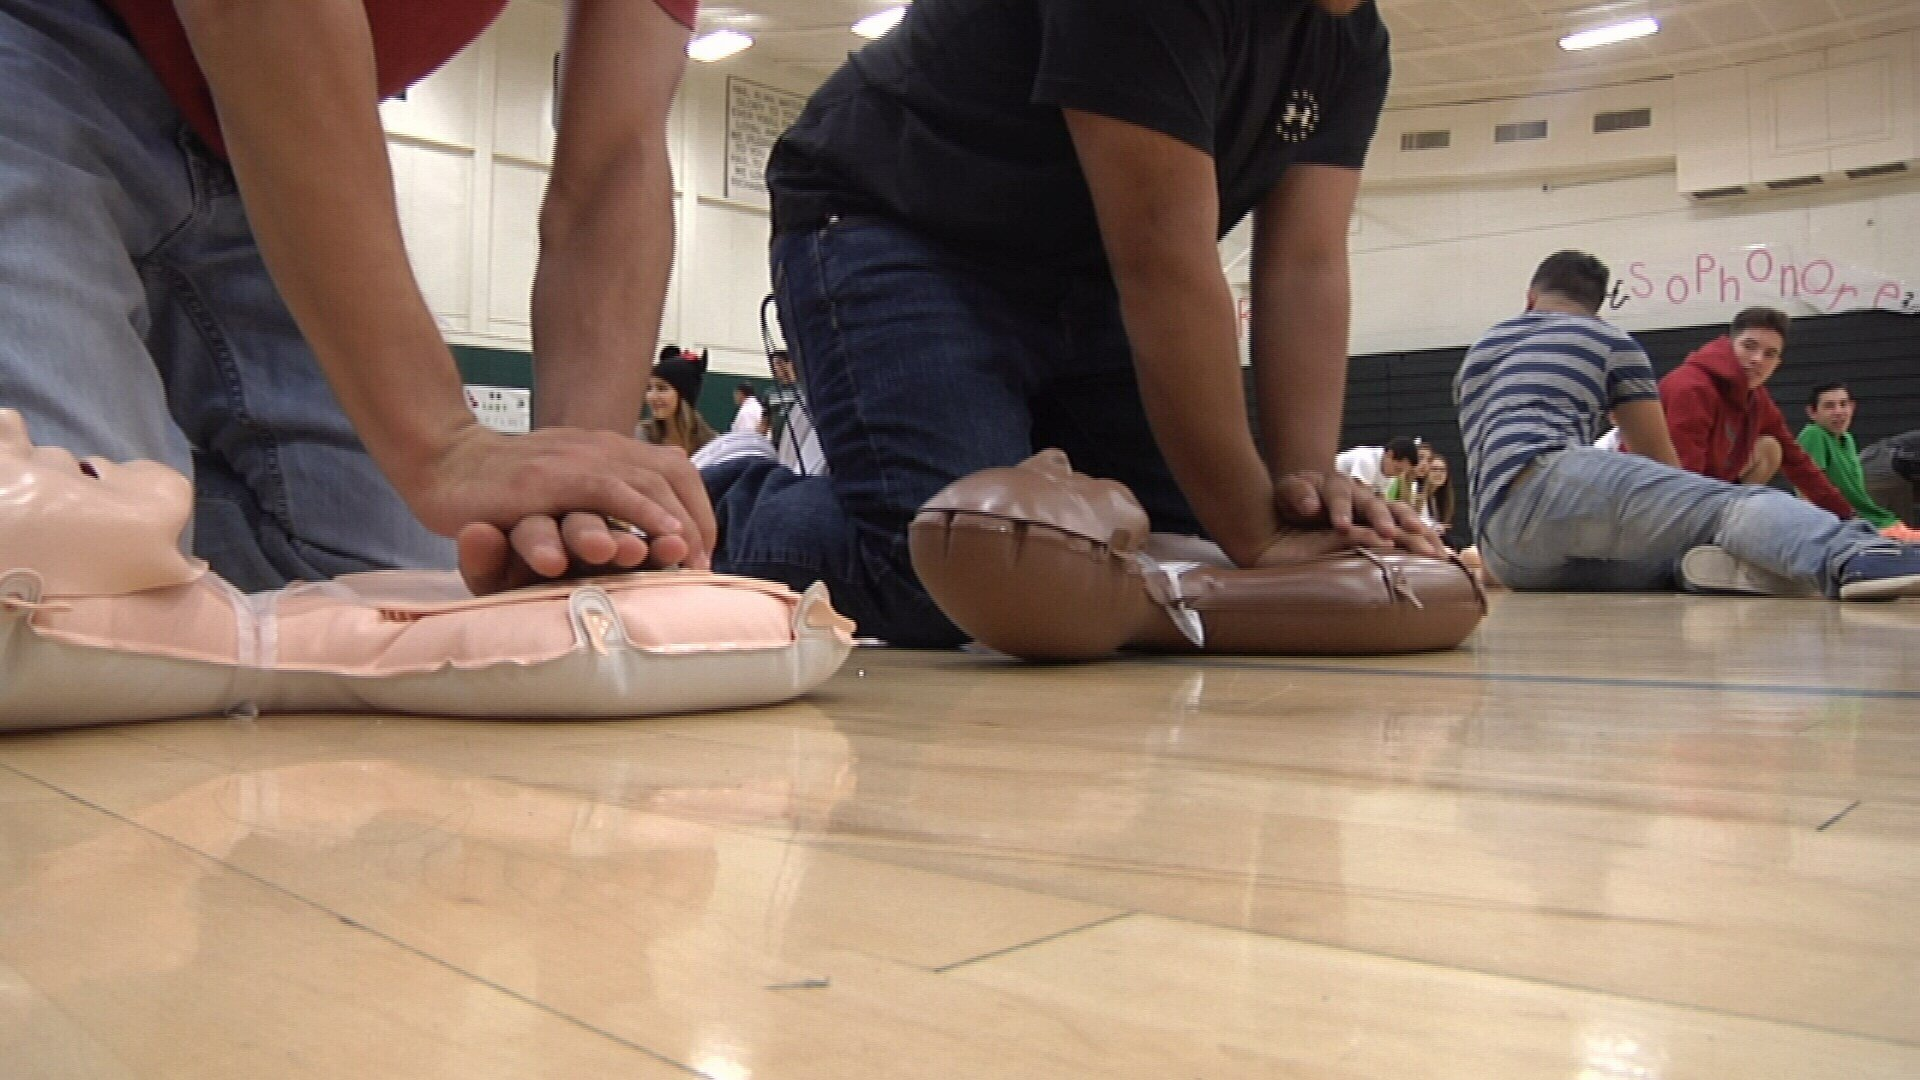 King high school students get cpr training kristv king high school students get cpr training kristv continuous news coverage corpus christi xflitez Gallery